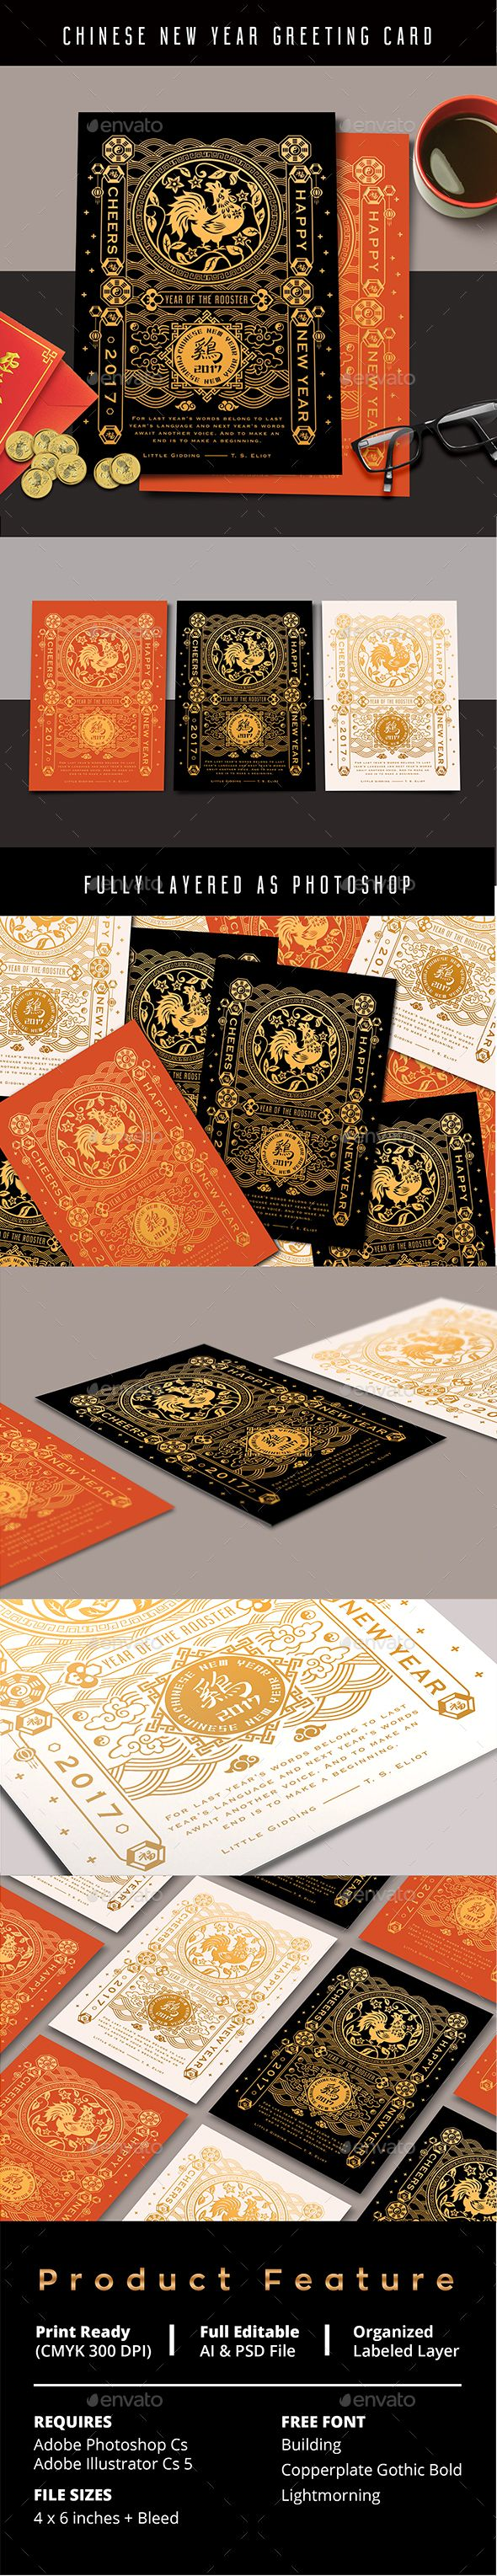 Chinese New Year Card Template PSD, AI Illustrator